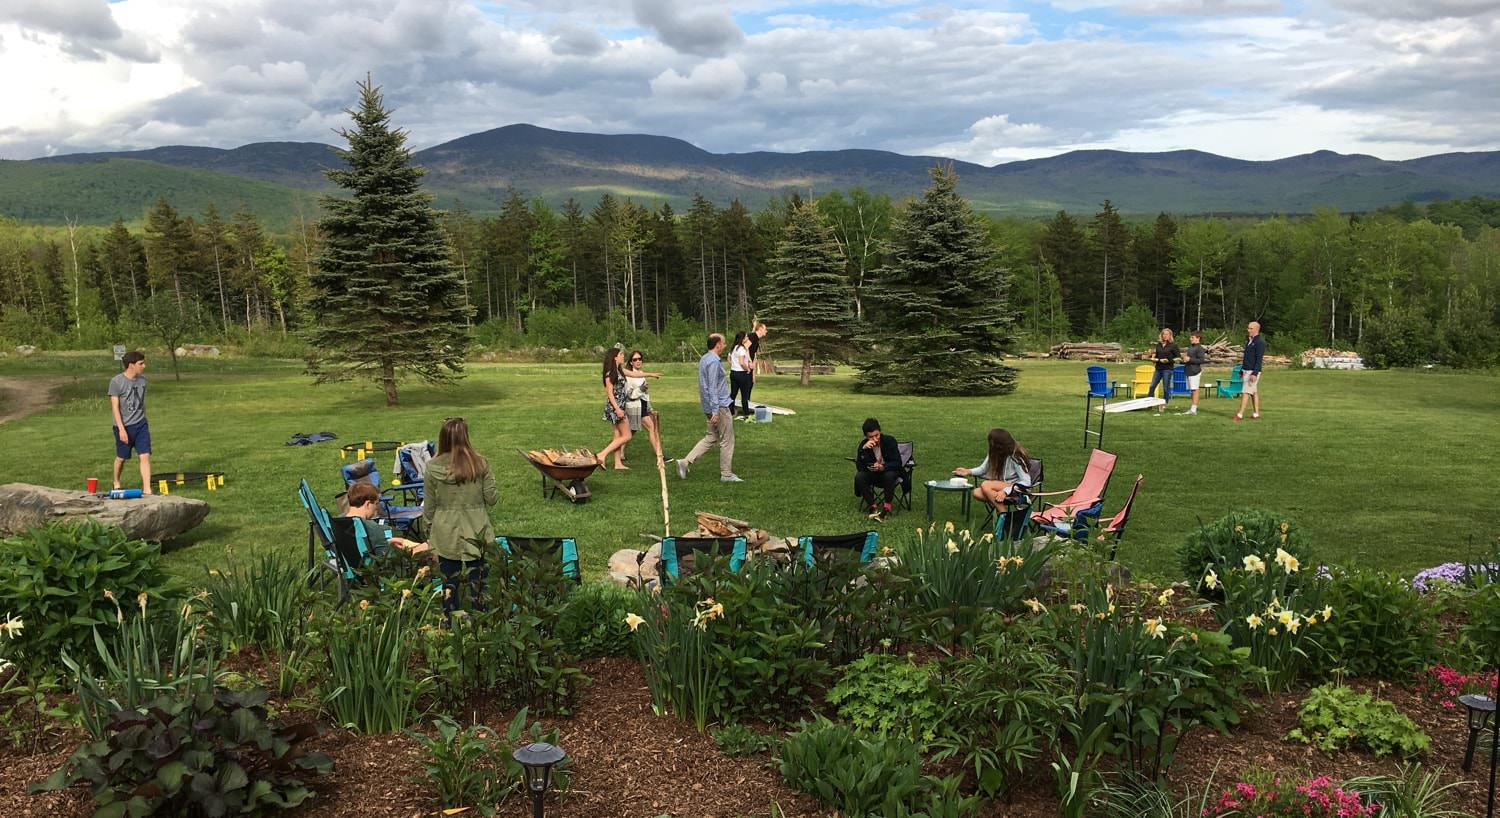 Several people in the common area enjoying yard games and the campfire surrounded by pine trees and distant hills